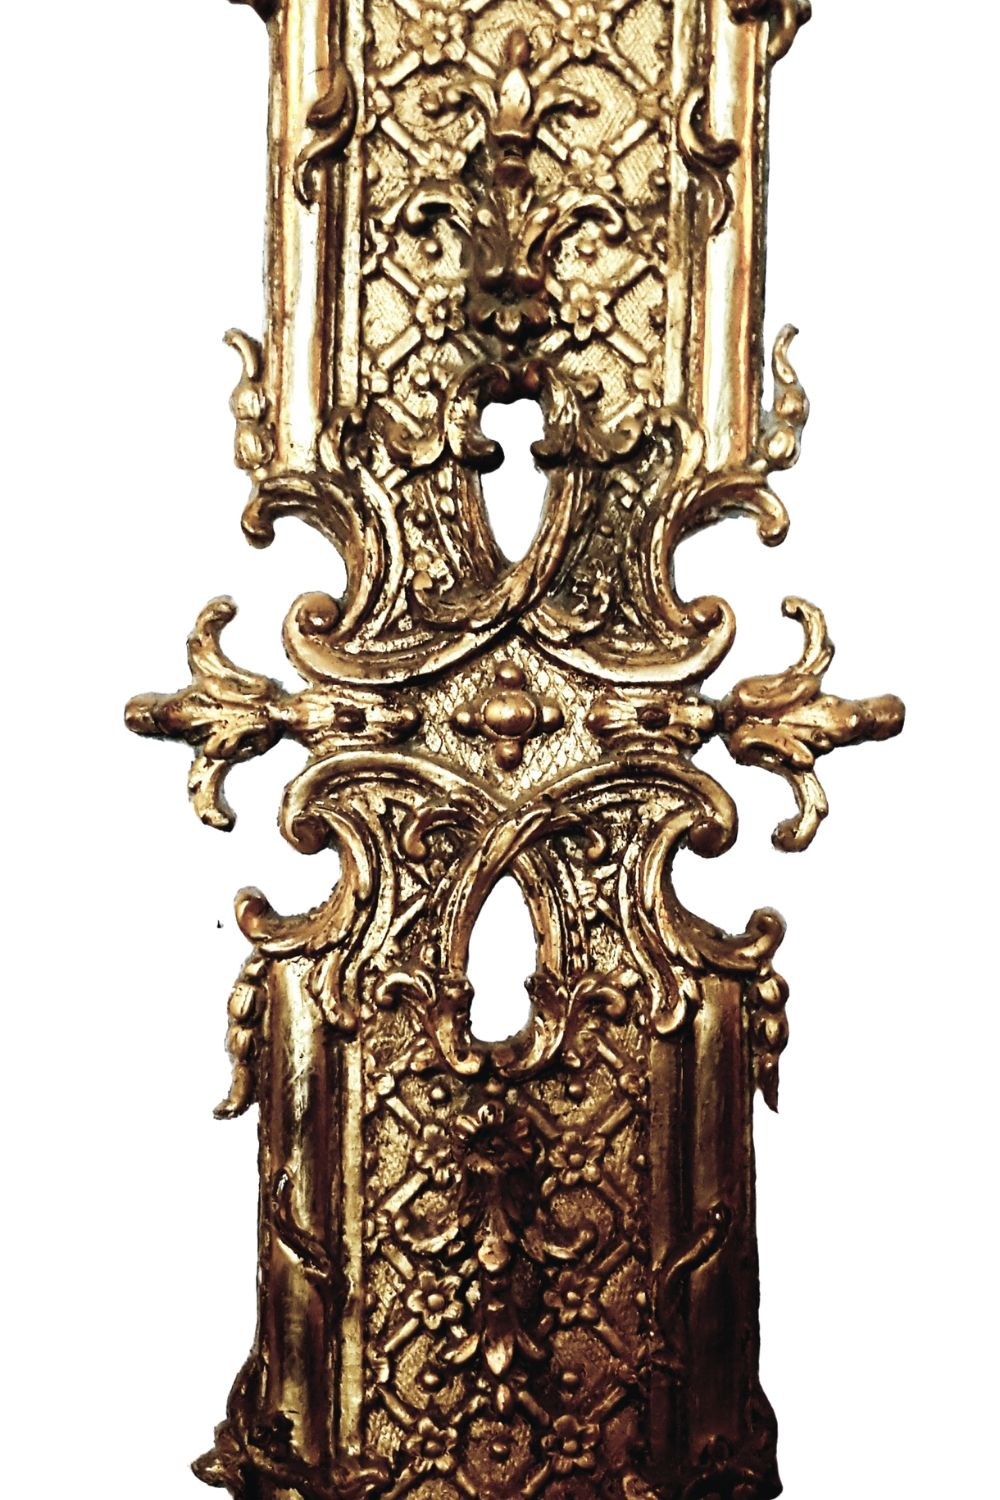 Close up detail of gold ornate moulding from a French Palace's interior